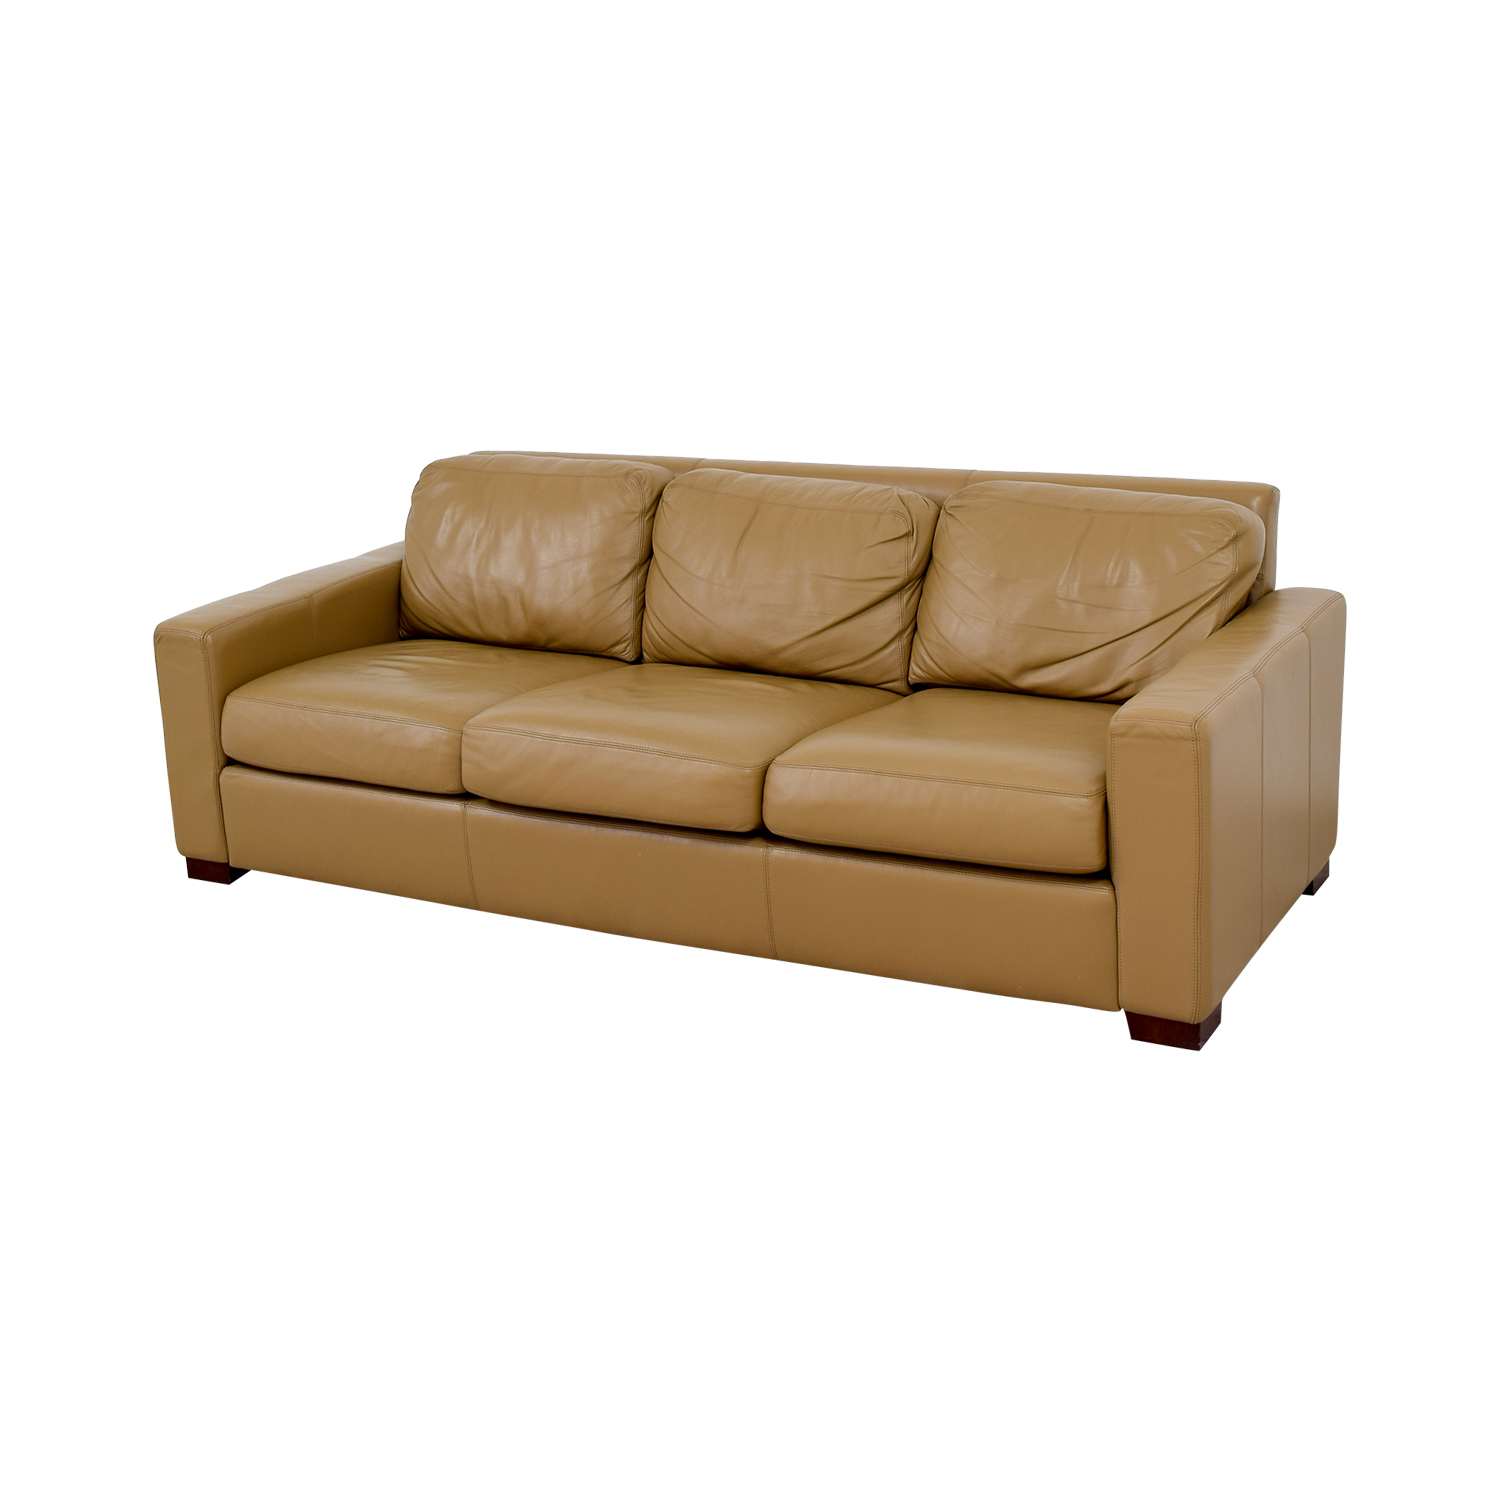 shop Design Within Reach Tan Leather Three-Cushion Sofa Design Within Reach Classic Sofas